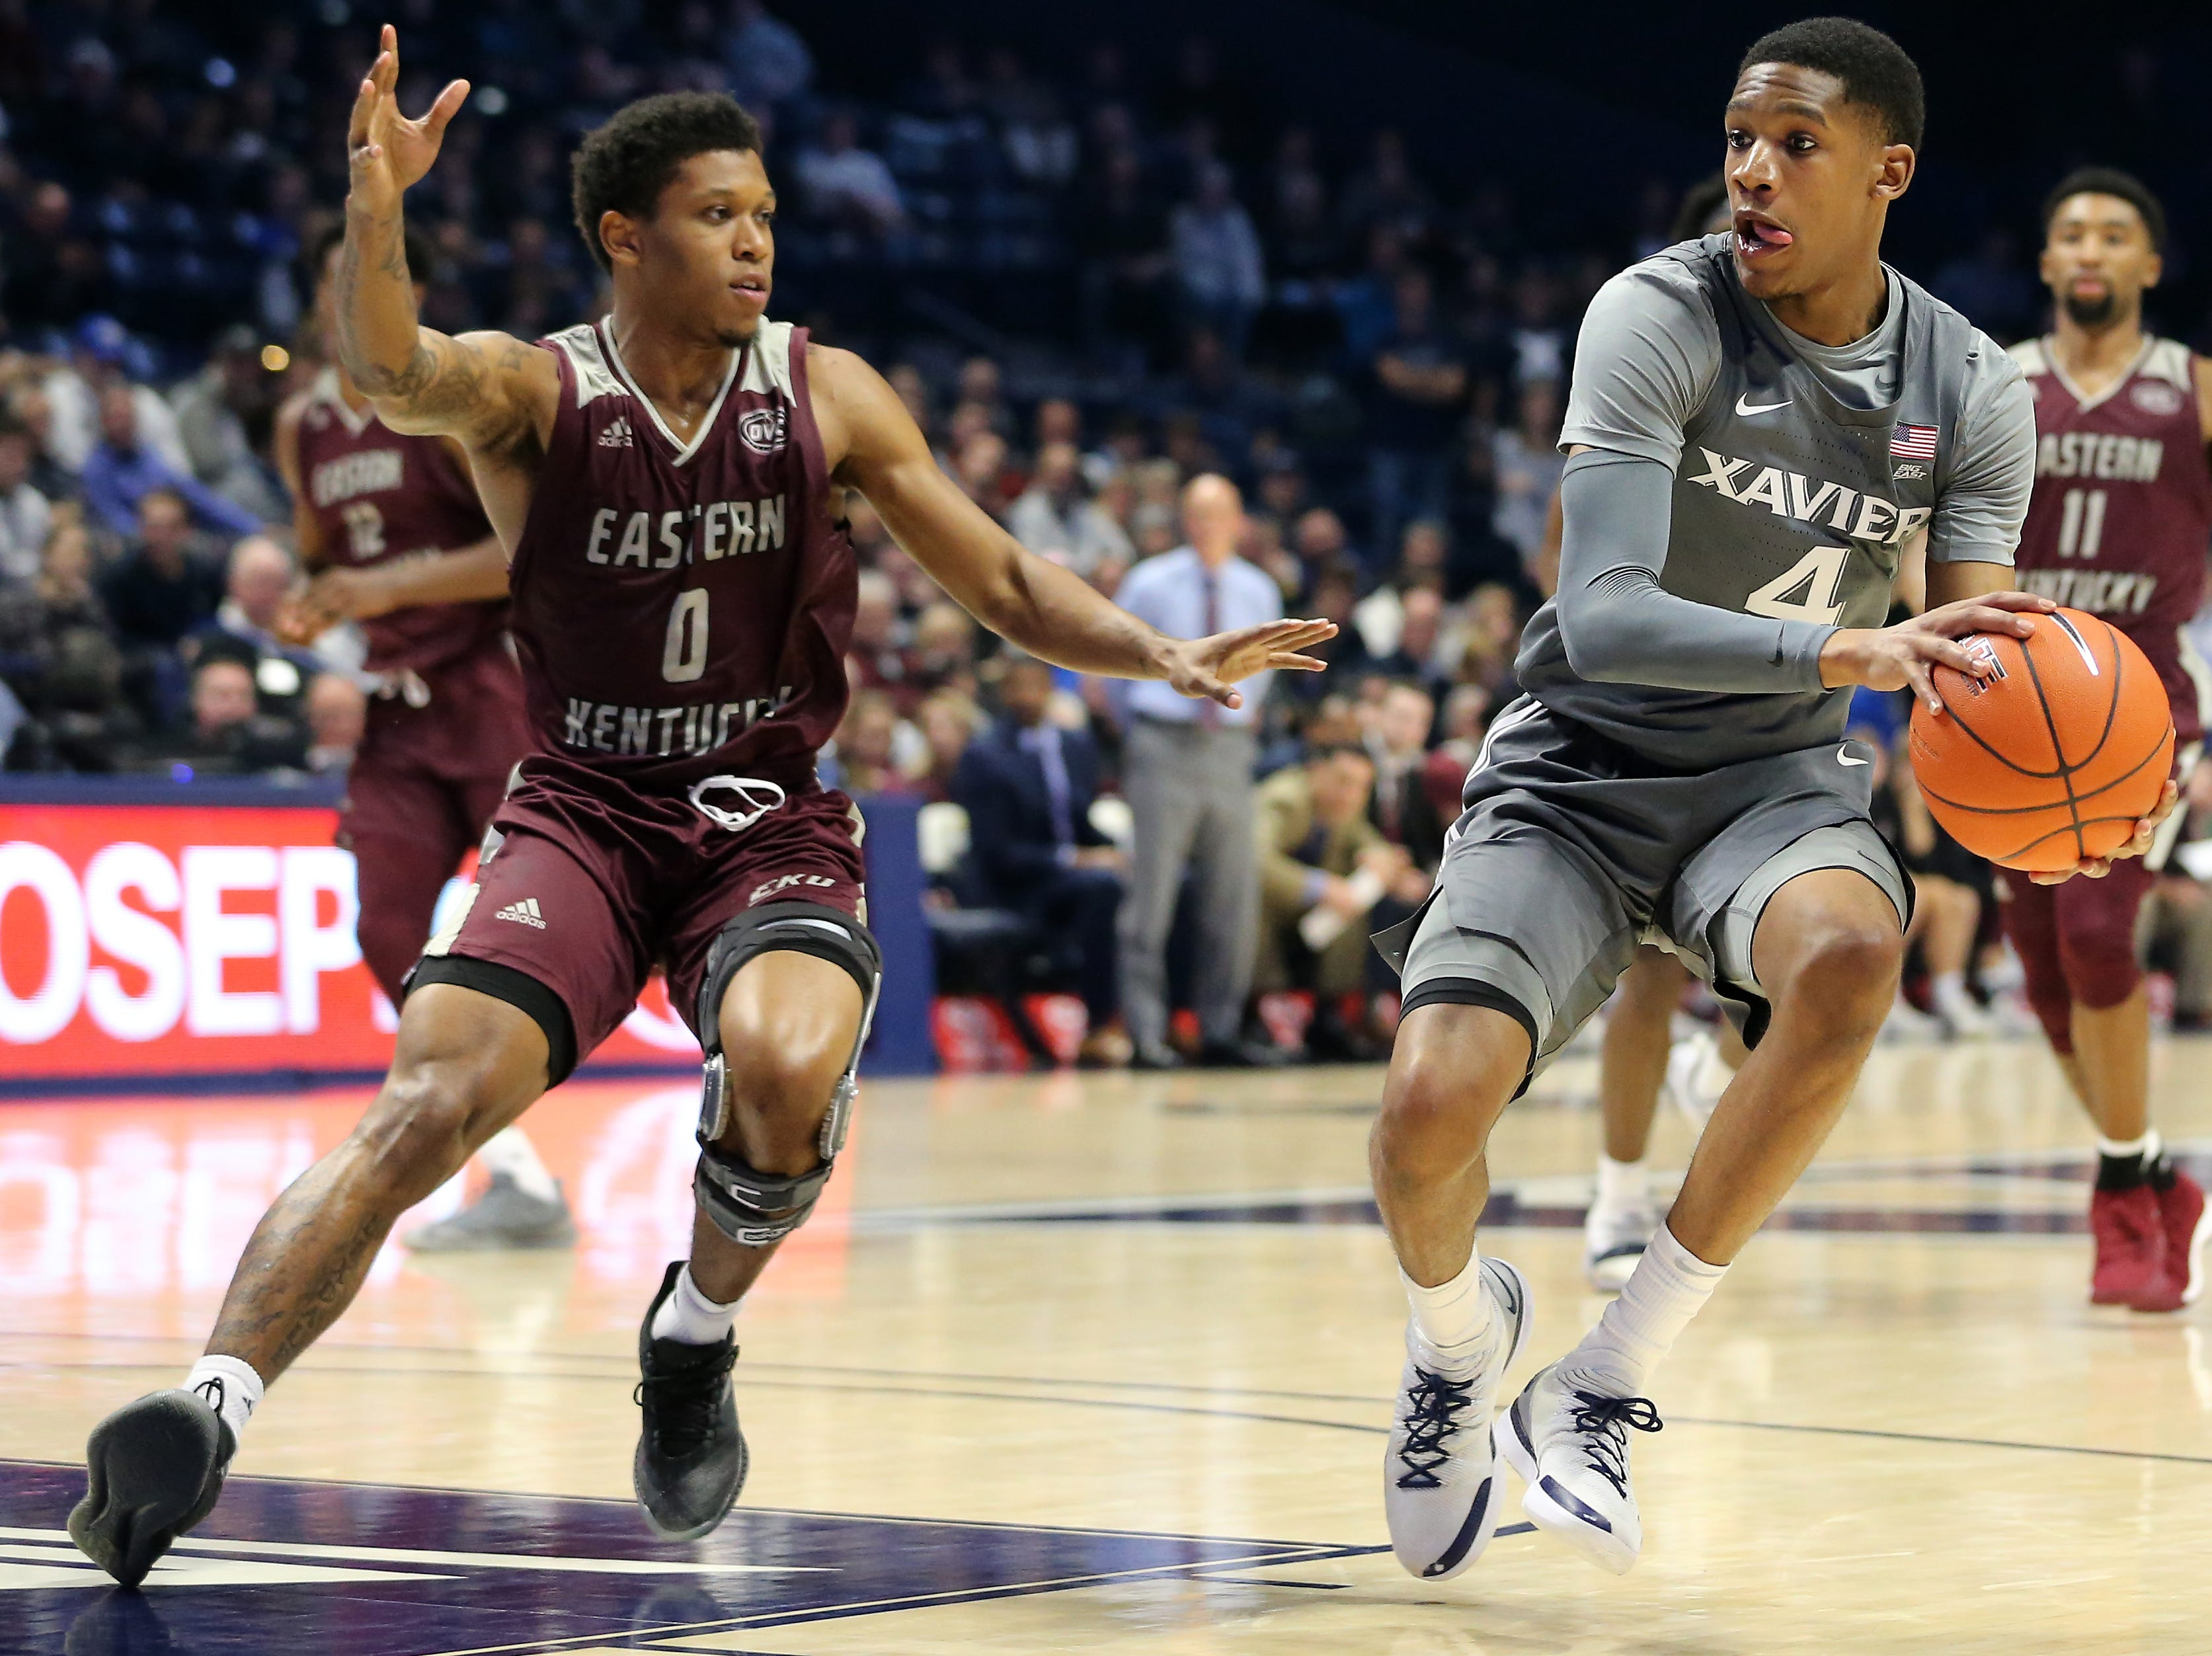 Xavier Musketeers guard Elias Harden (4) looks to pass as Eastern Kentucky Colonels guard Dujuanta Weaver (0) defends in the second half of an NCAA college basketball game, Saturday, Dec. 15, 2018, at Cintas Center in Cincinnati, Ohio